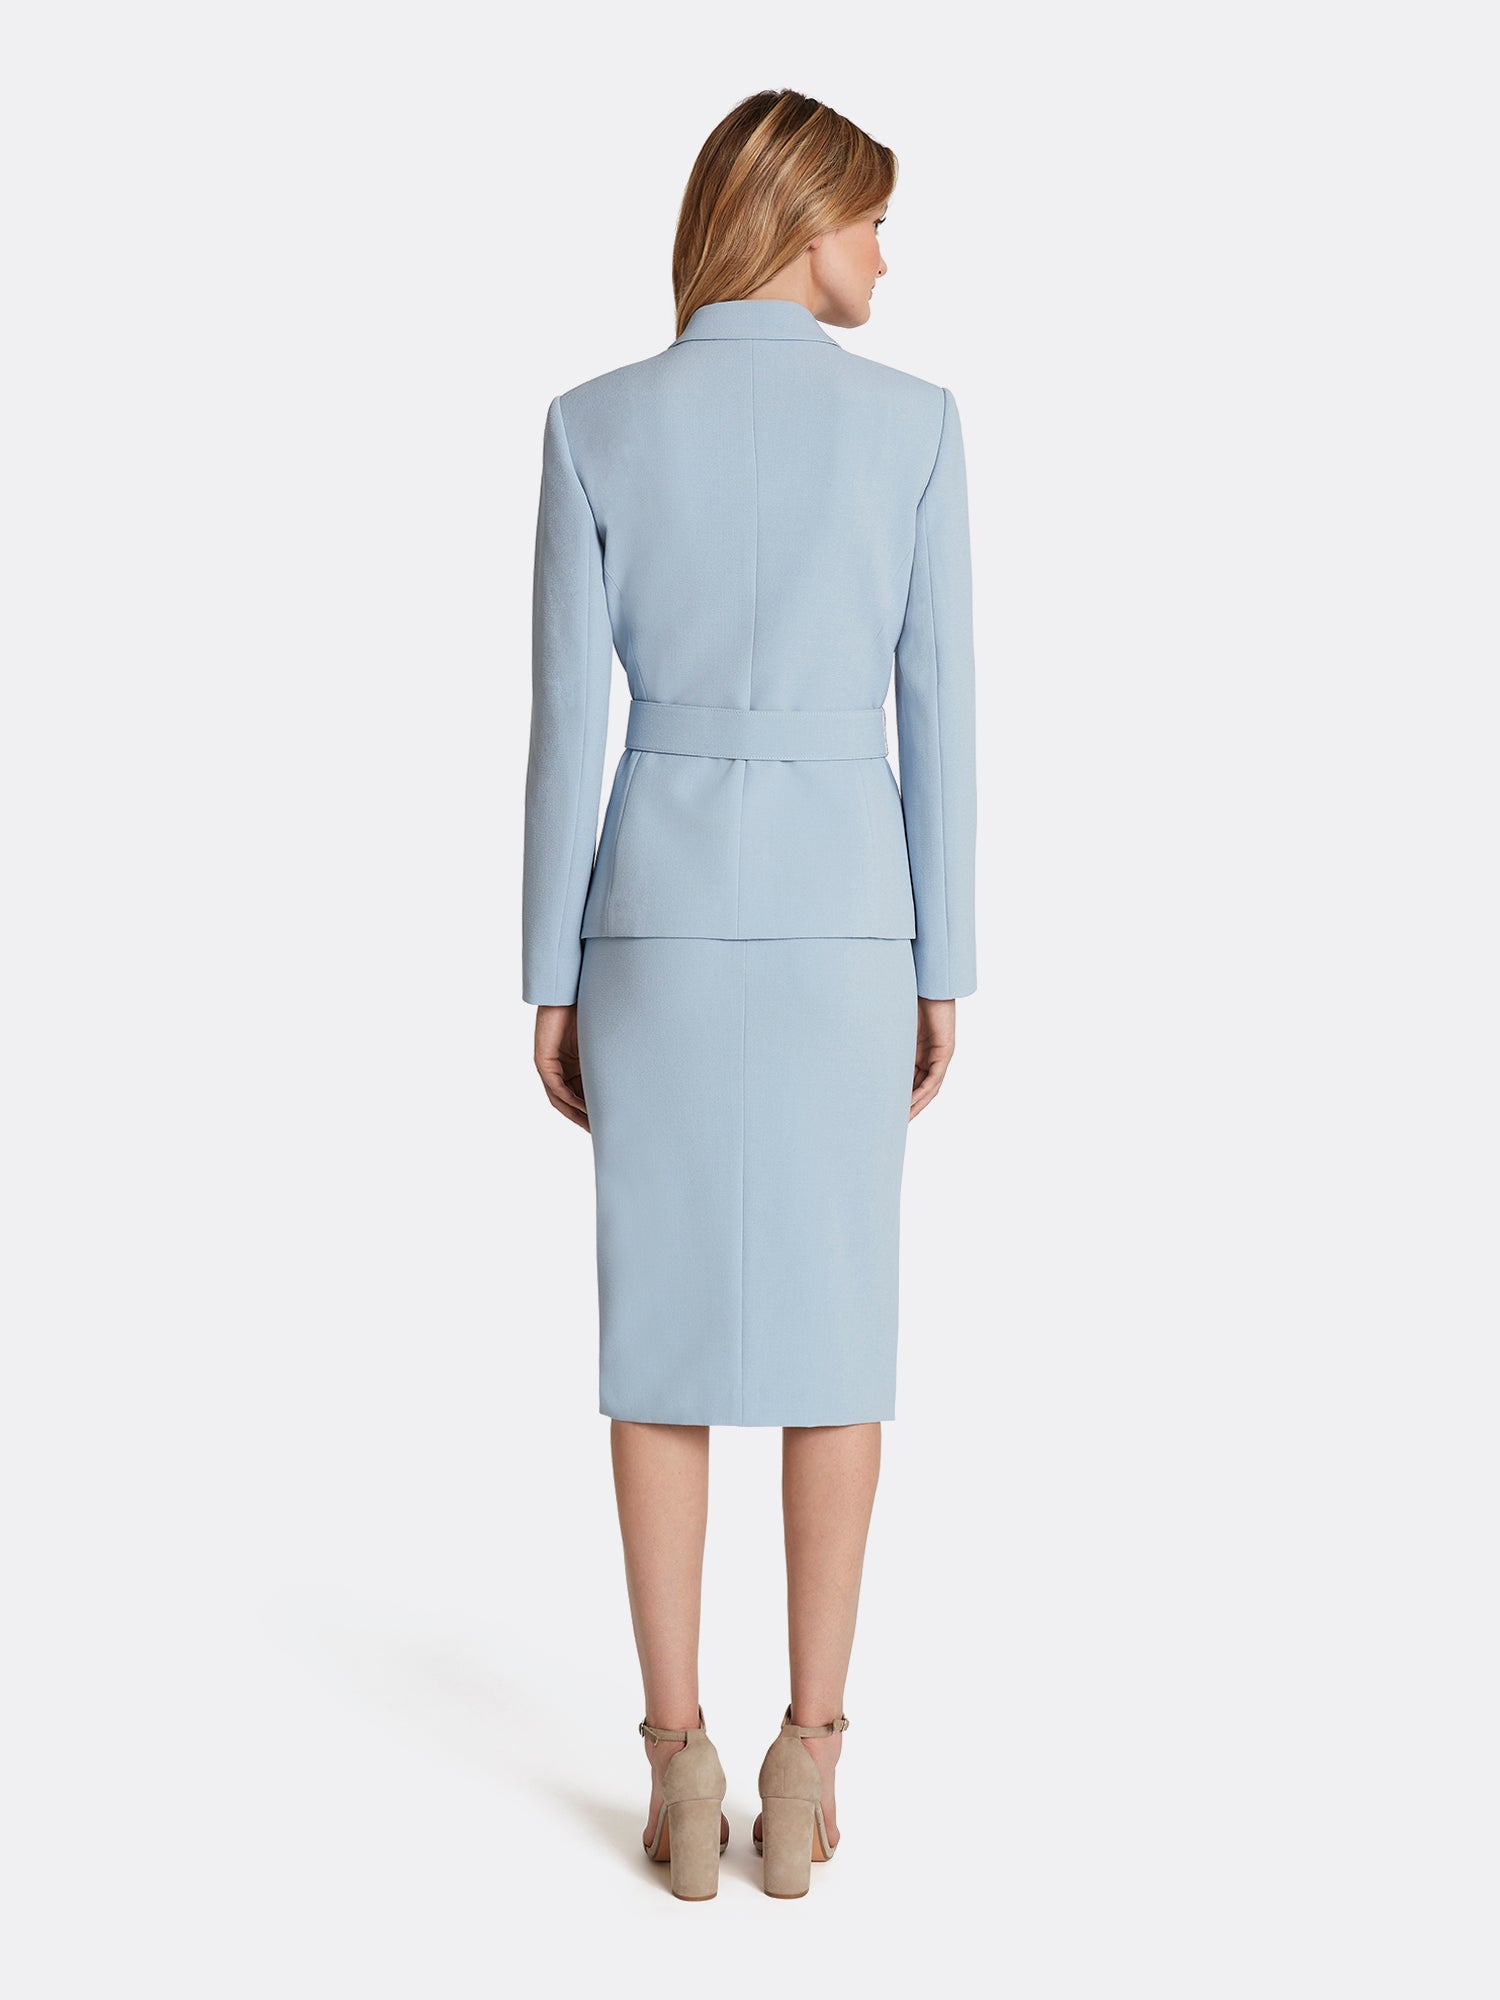 Tahari by ASL Belted Jacket with Pencil Skirt Set